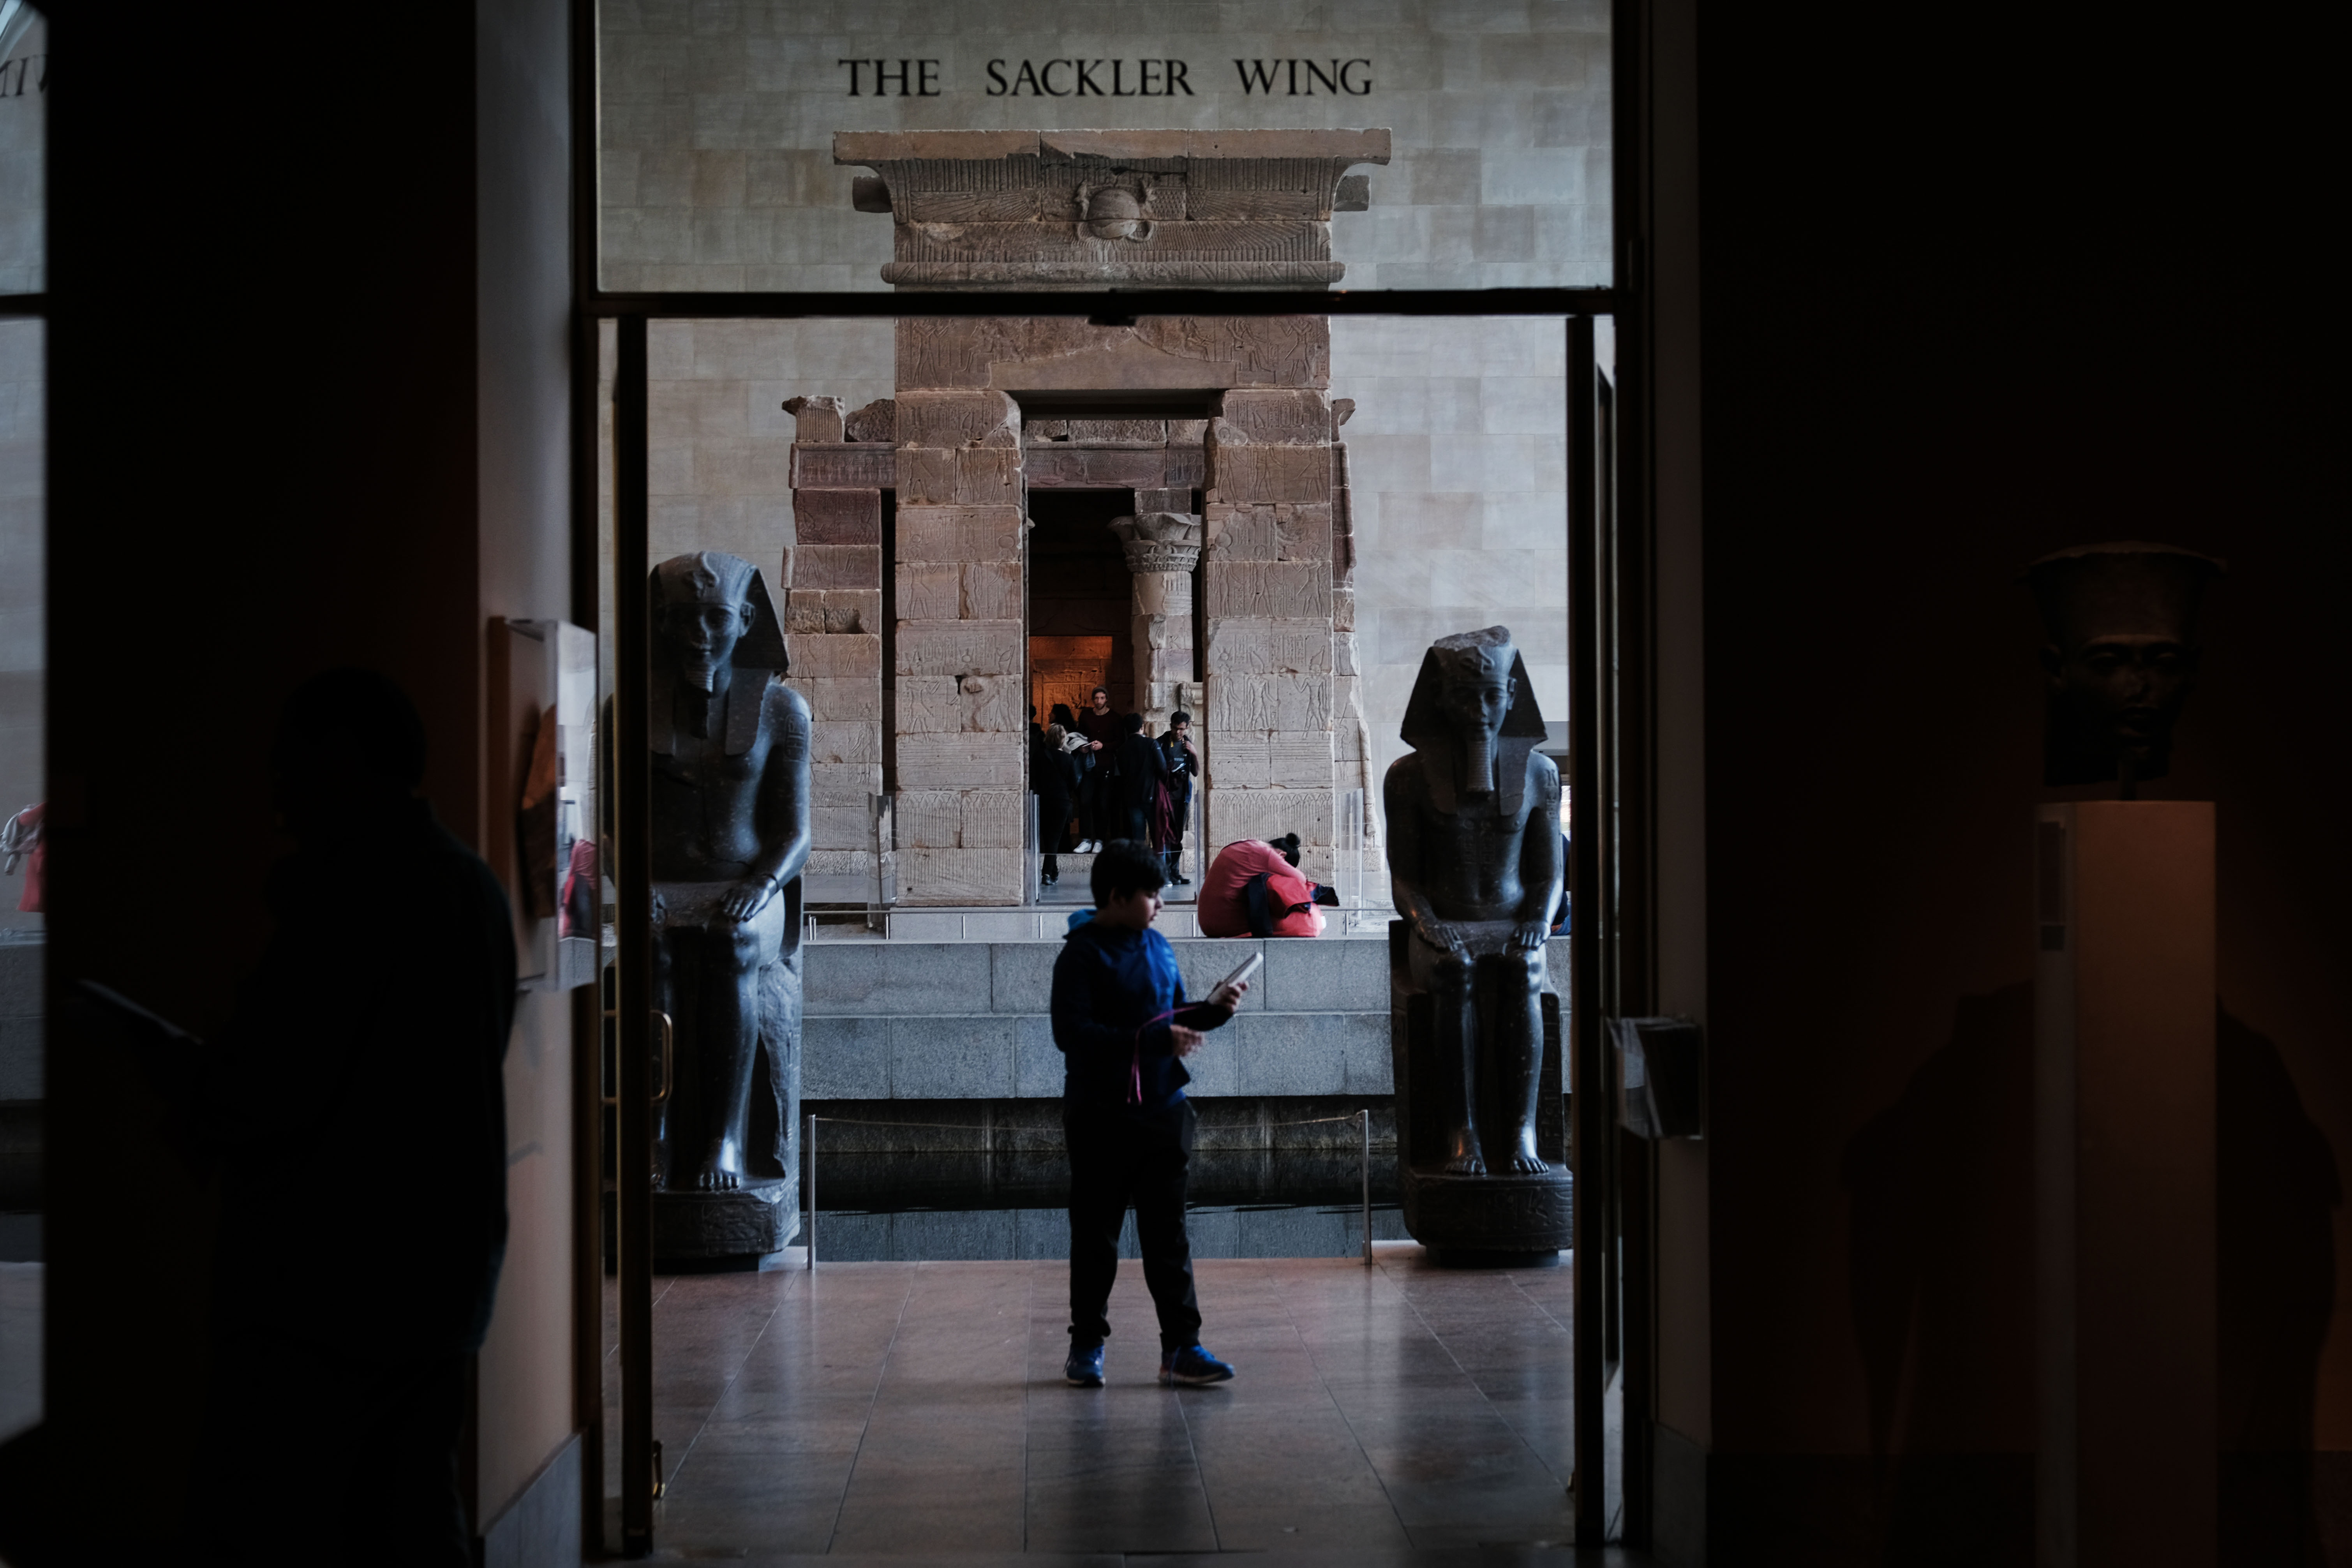 Art Museums Begin To Reject Sackler Family Donations